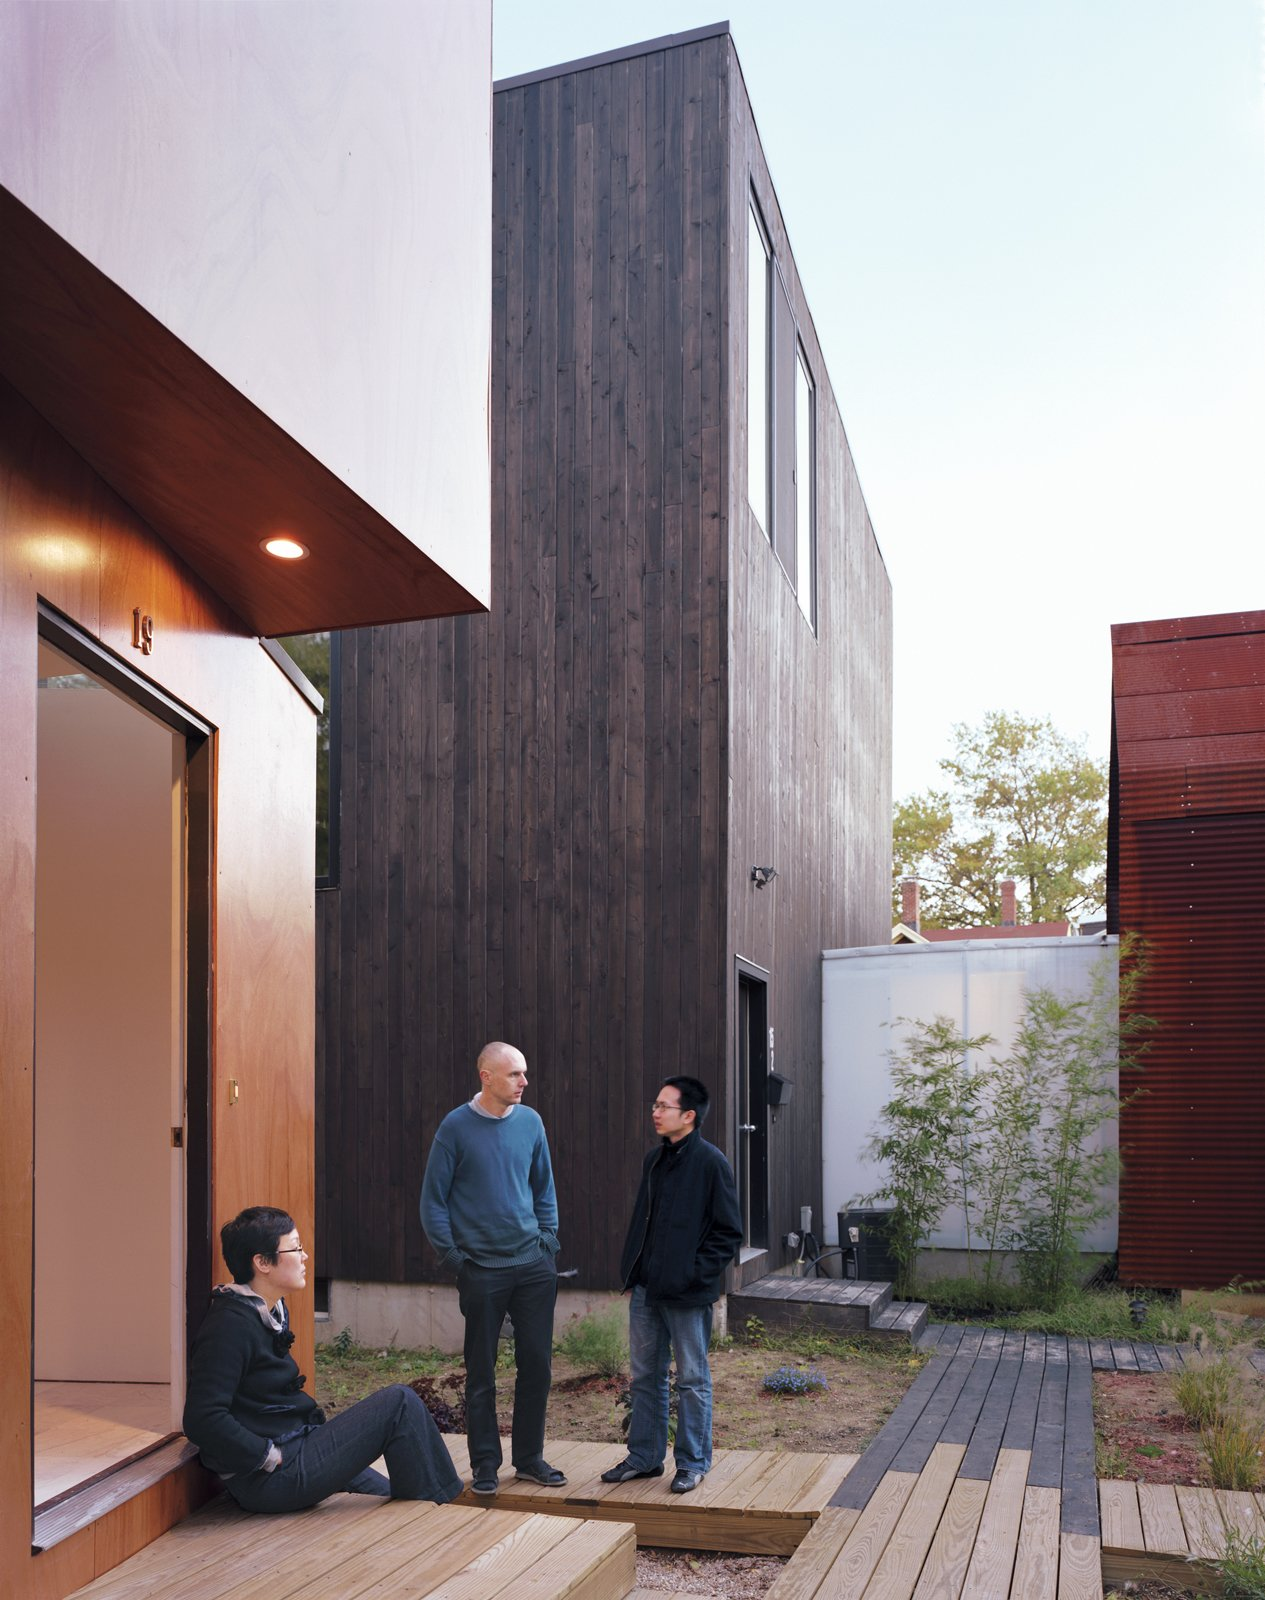 Schenk, Kim, and Kaewlai chat outside of X-Small, standing on the reclaimed wood used to build the boardwalks that connect all four properties. The translucent corridor connecting Small and Medium illuminates the common space throughout the evening.  Photo 8 of 11 in Four Houses and a Future